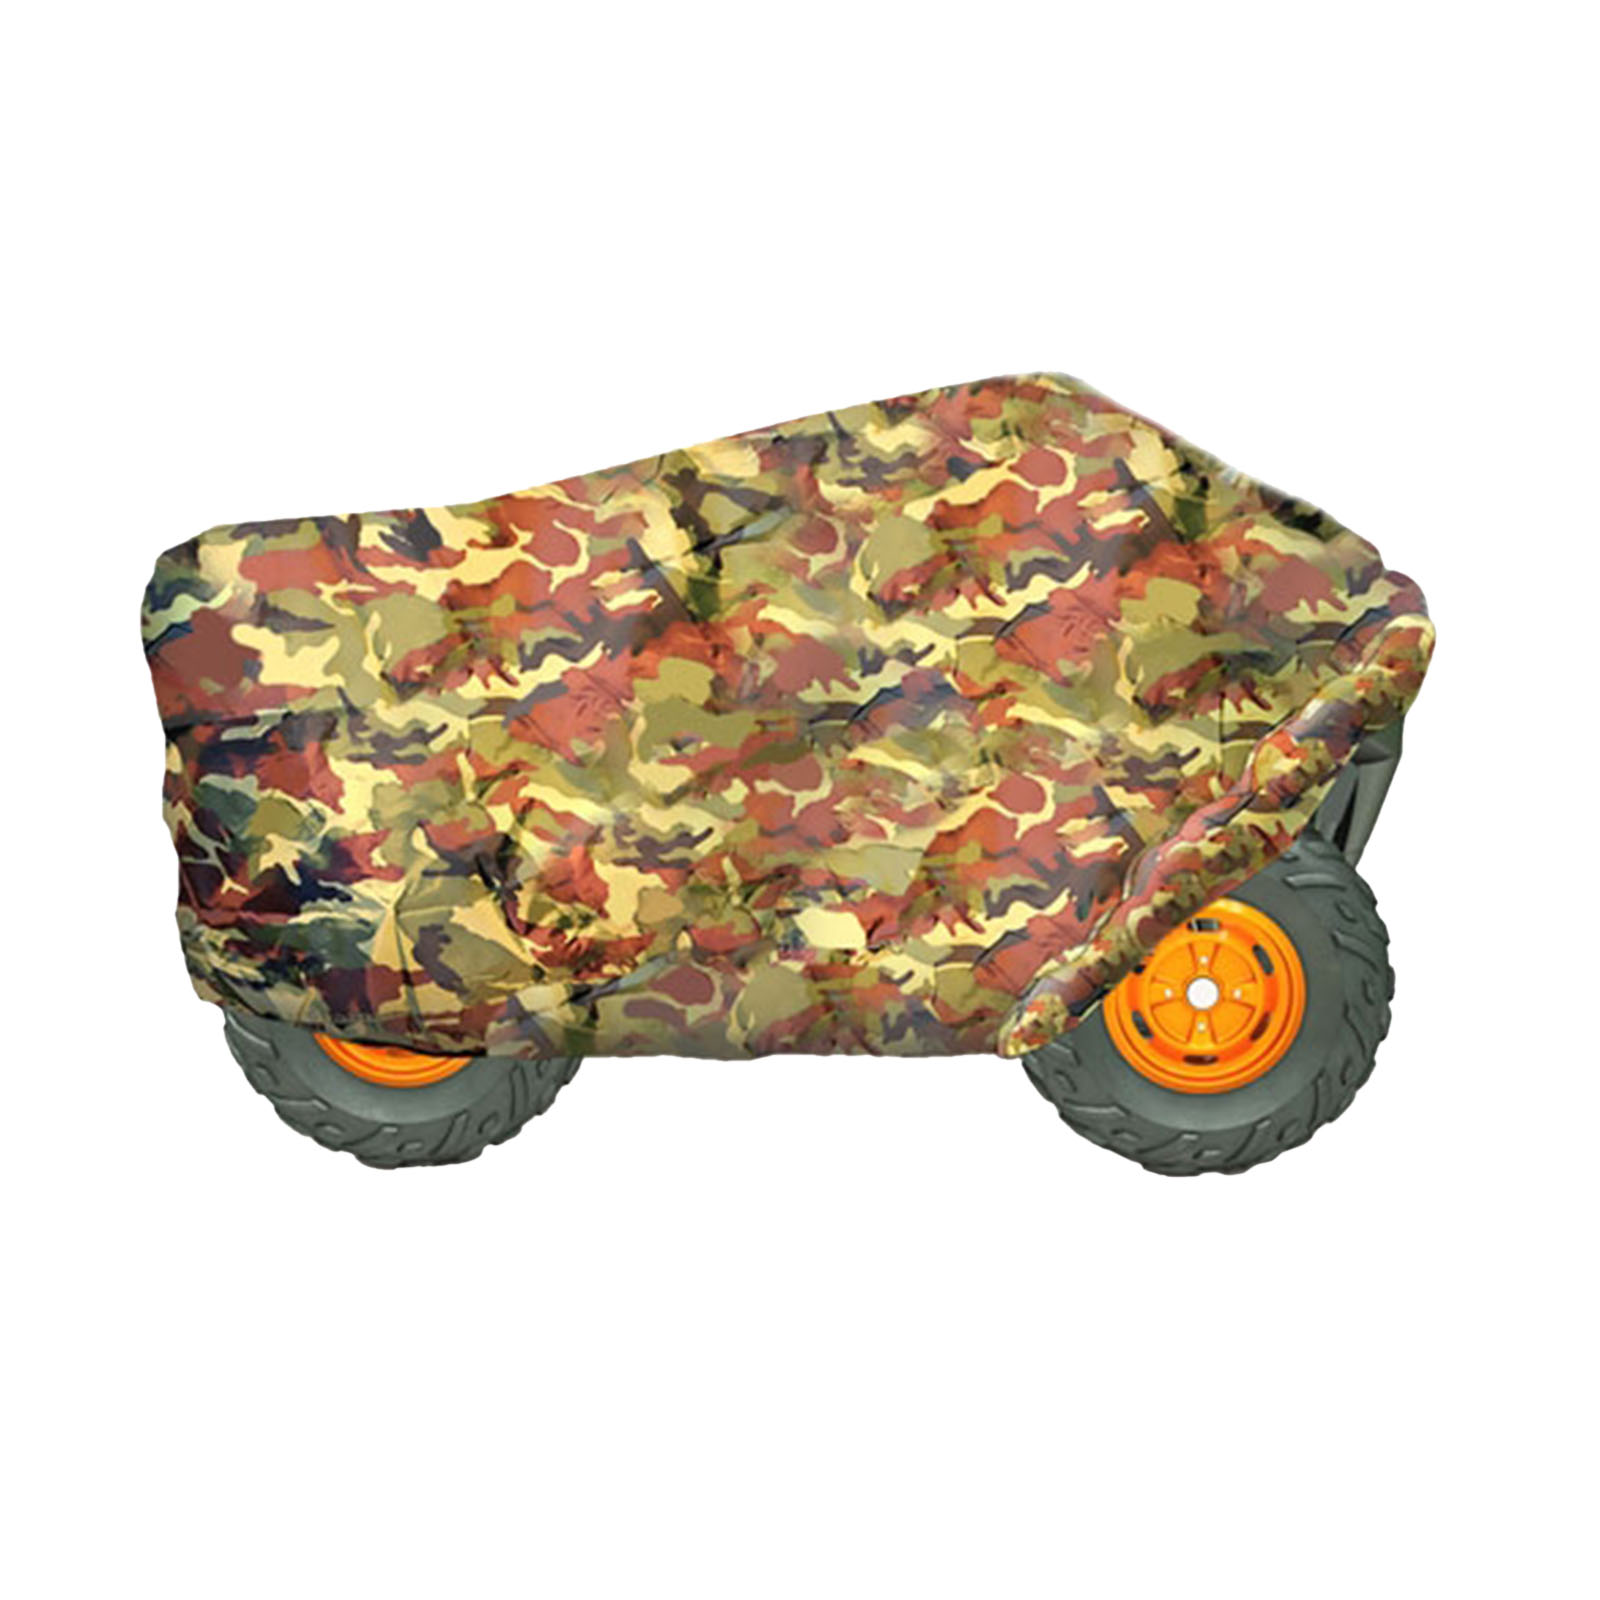 "Armor Shield ATV / 4 Wheeler Protective Cover, Camo Print, Fits Vehicles up to 82""L x 48""W x 31.5""H"